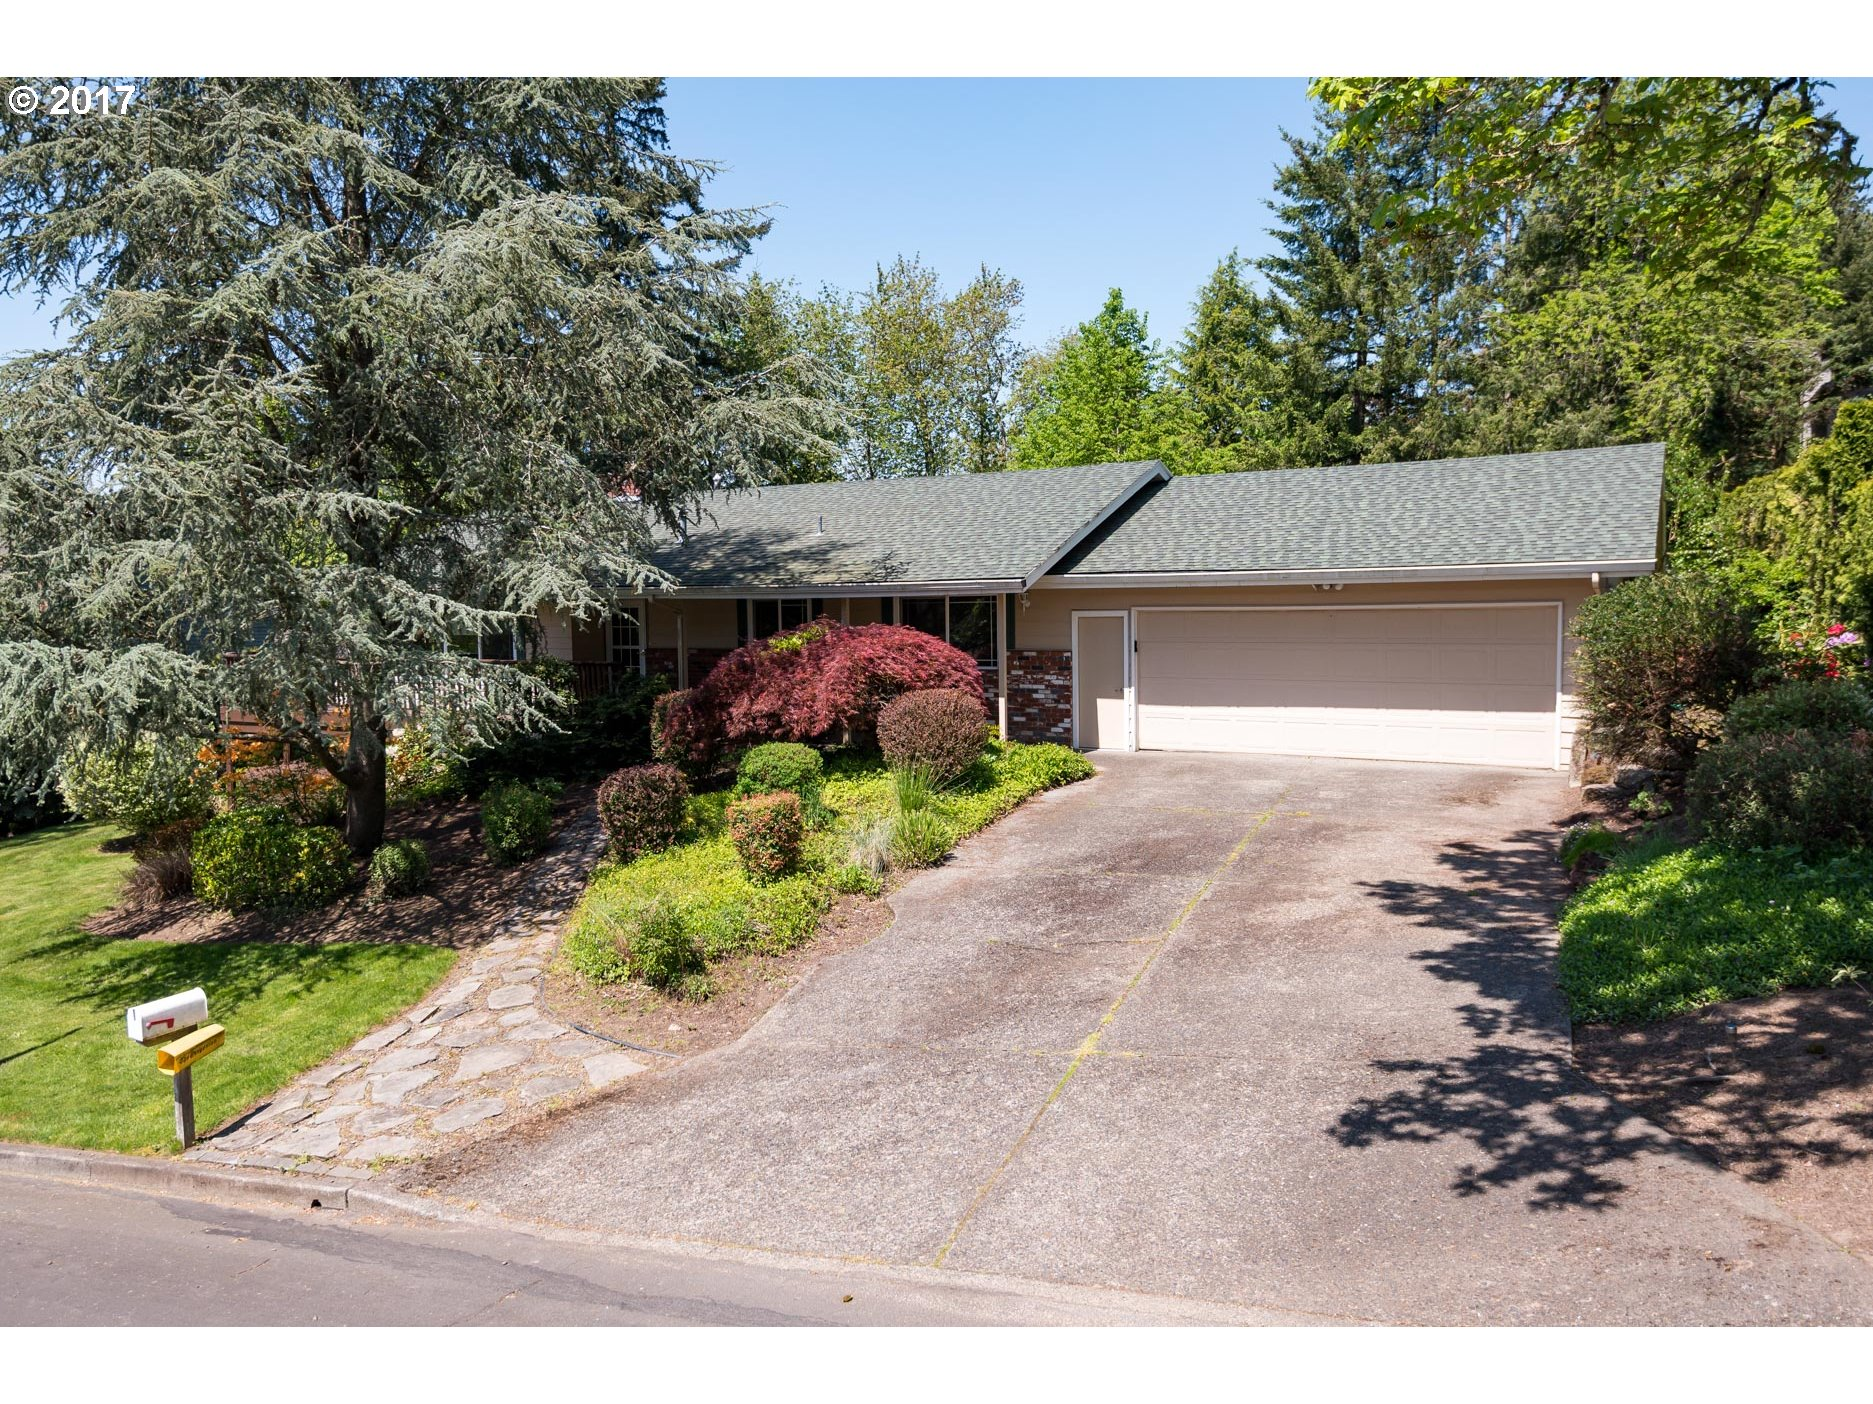 3707 OLSON CT, Lake Oswego, OR 97034